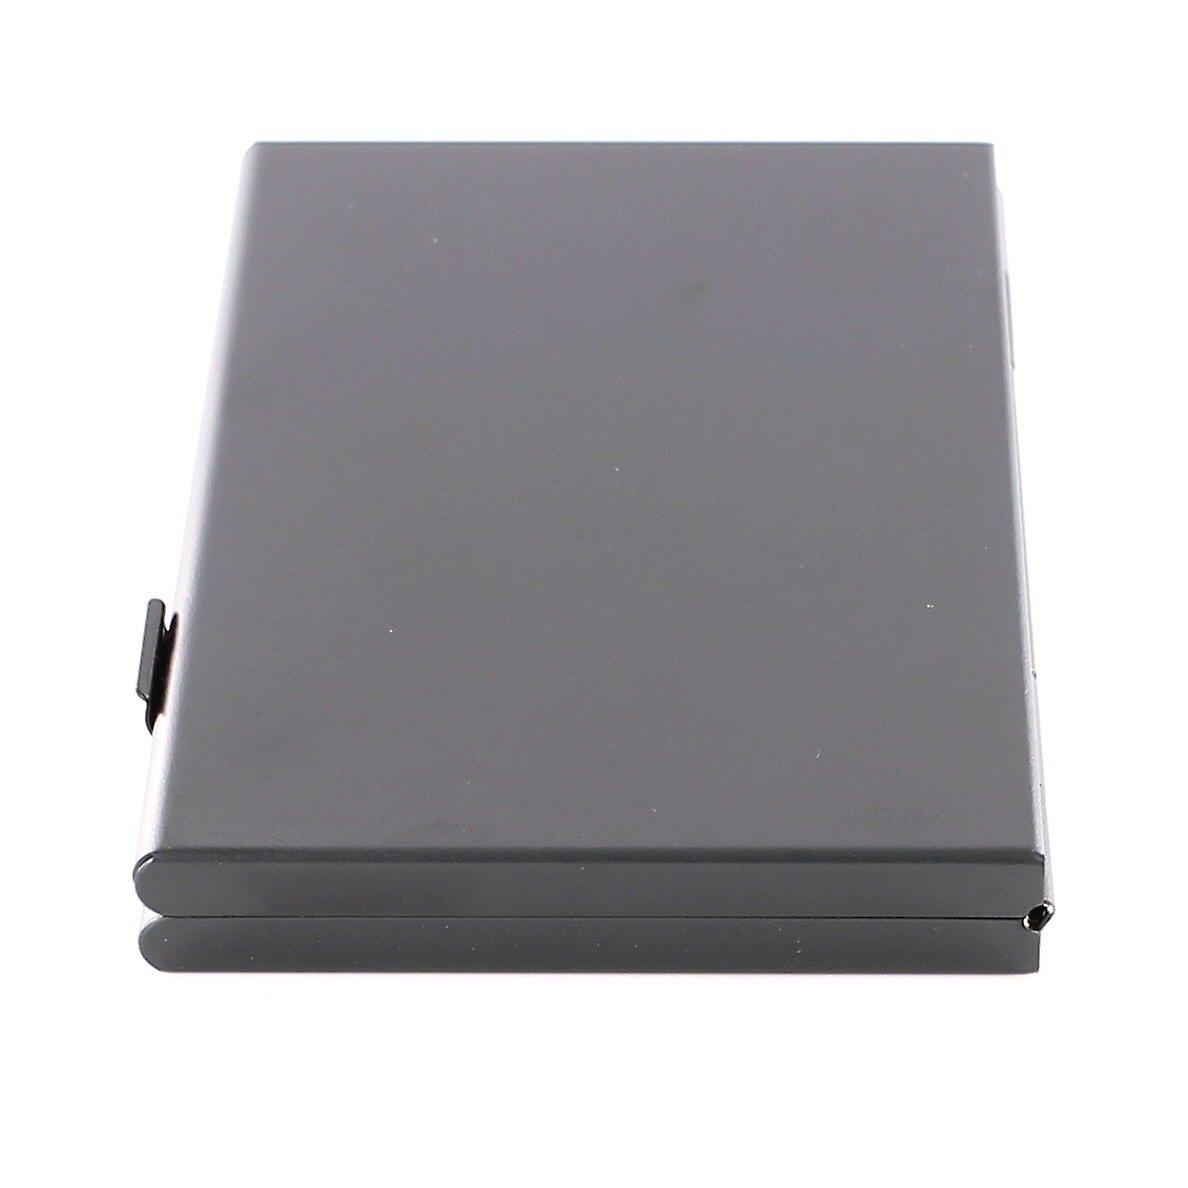 6 in 1 aluminium metal game card holder travel case storage wallet for sony ps vita - black